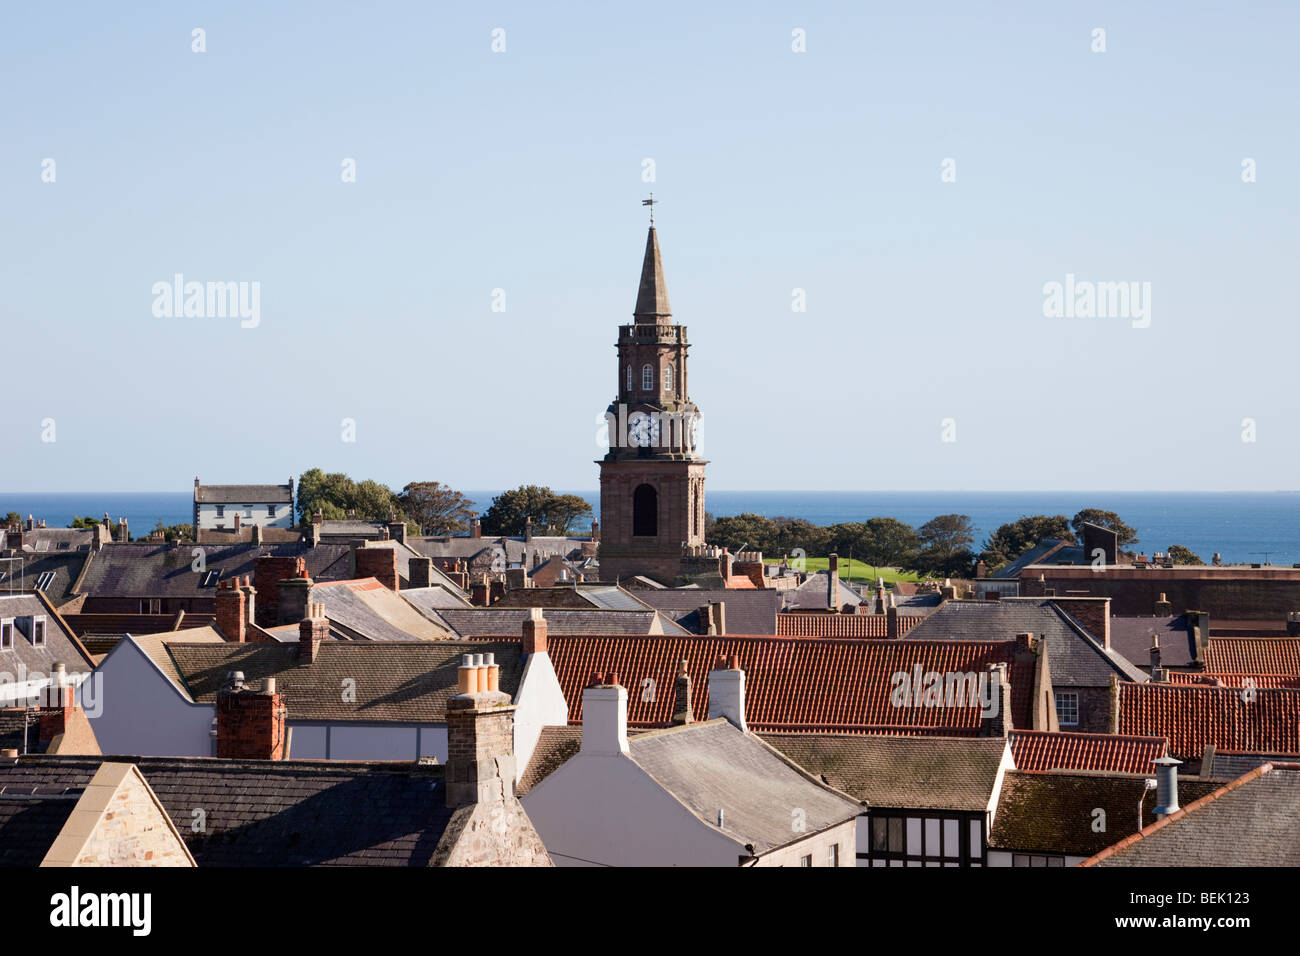 High view across rooftops to the Town Hall clock in border town centre. Berwick upon Tweed, Northumberland, England, - Stock Image